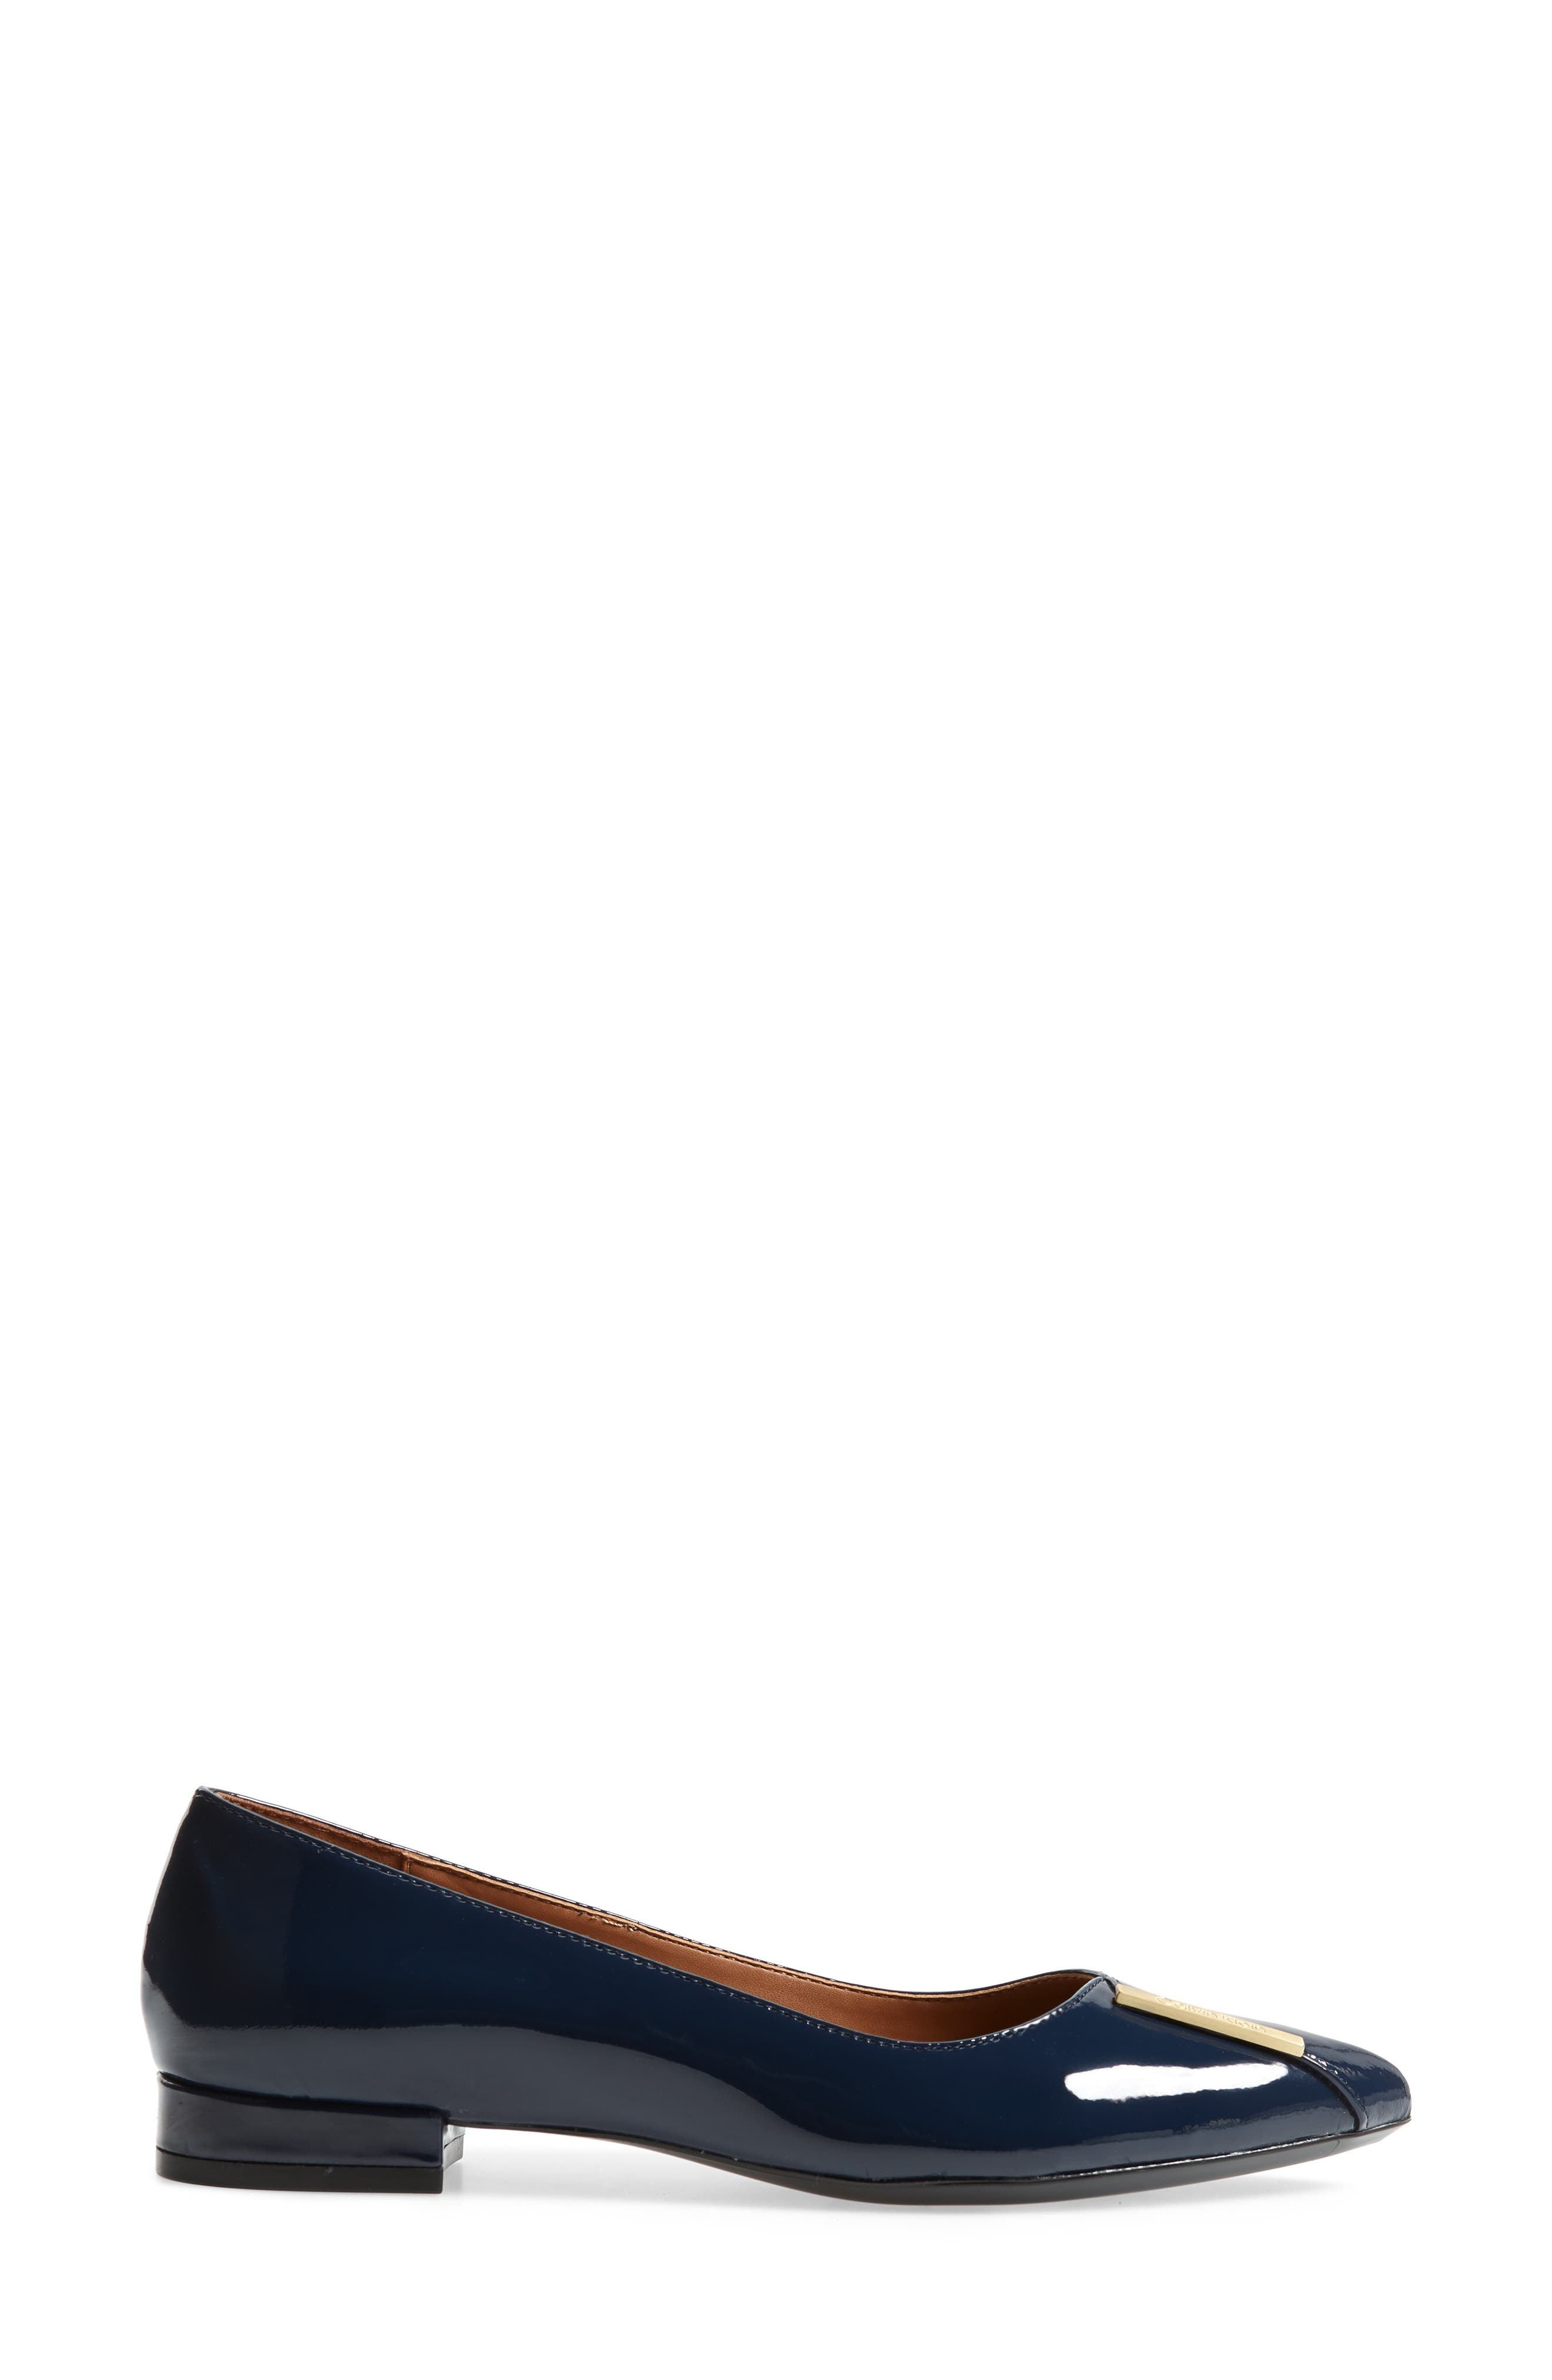 Arline Pointy Toe Flat,                             Alternate thumbnail 3, color,                             NAVY PATENT LEATHER